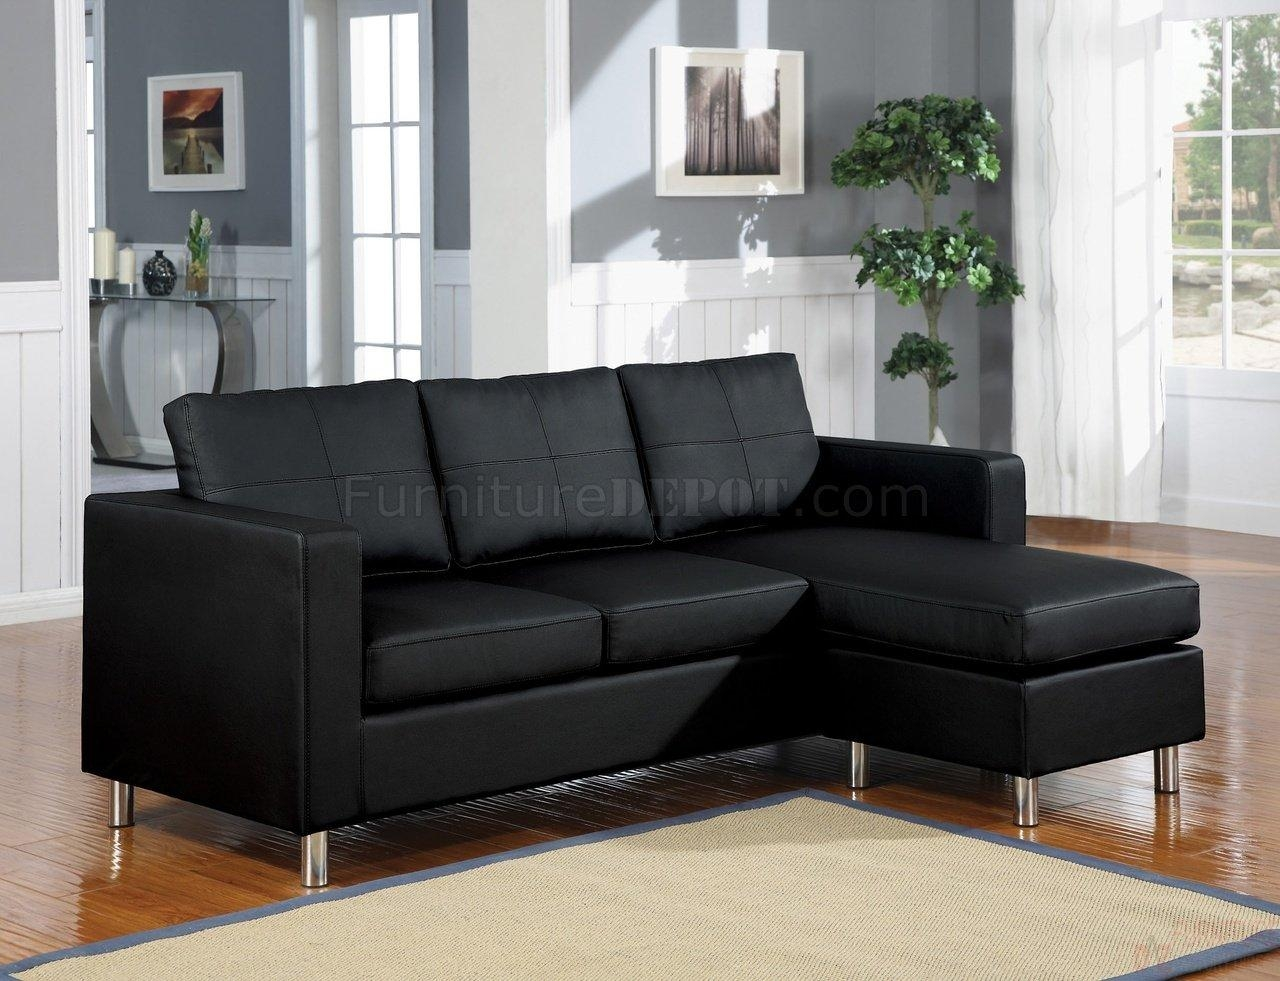 15065 Kemen Sectional Sofa In Black Vinylacme regarding Black Vinyl Sofas